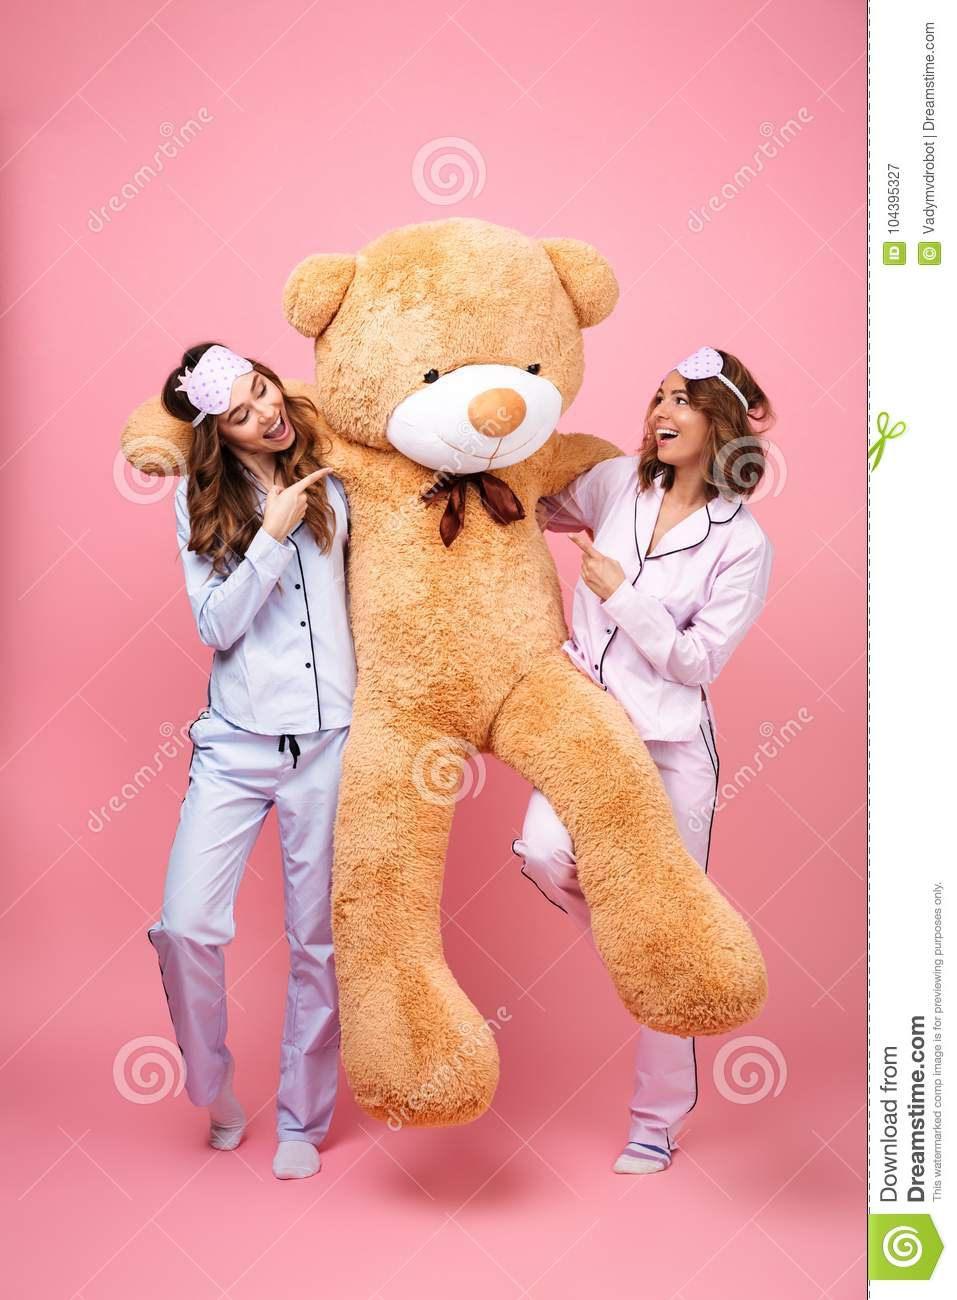 Photo of two amazing friends women in pajamas isolated over pink background  hug big teddy toy bear. Looking ae pointing. e0f515e02